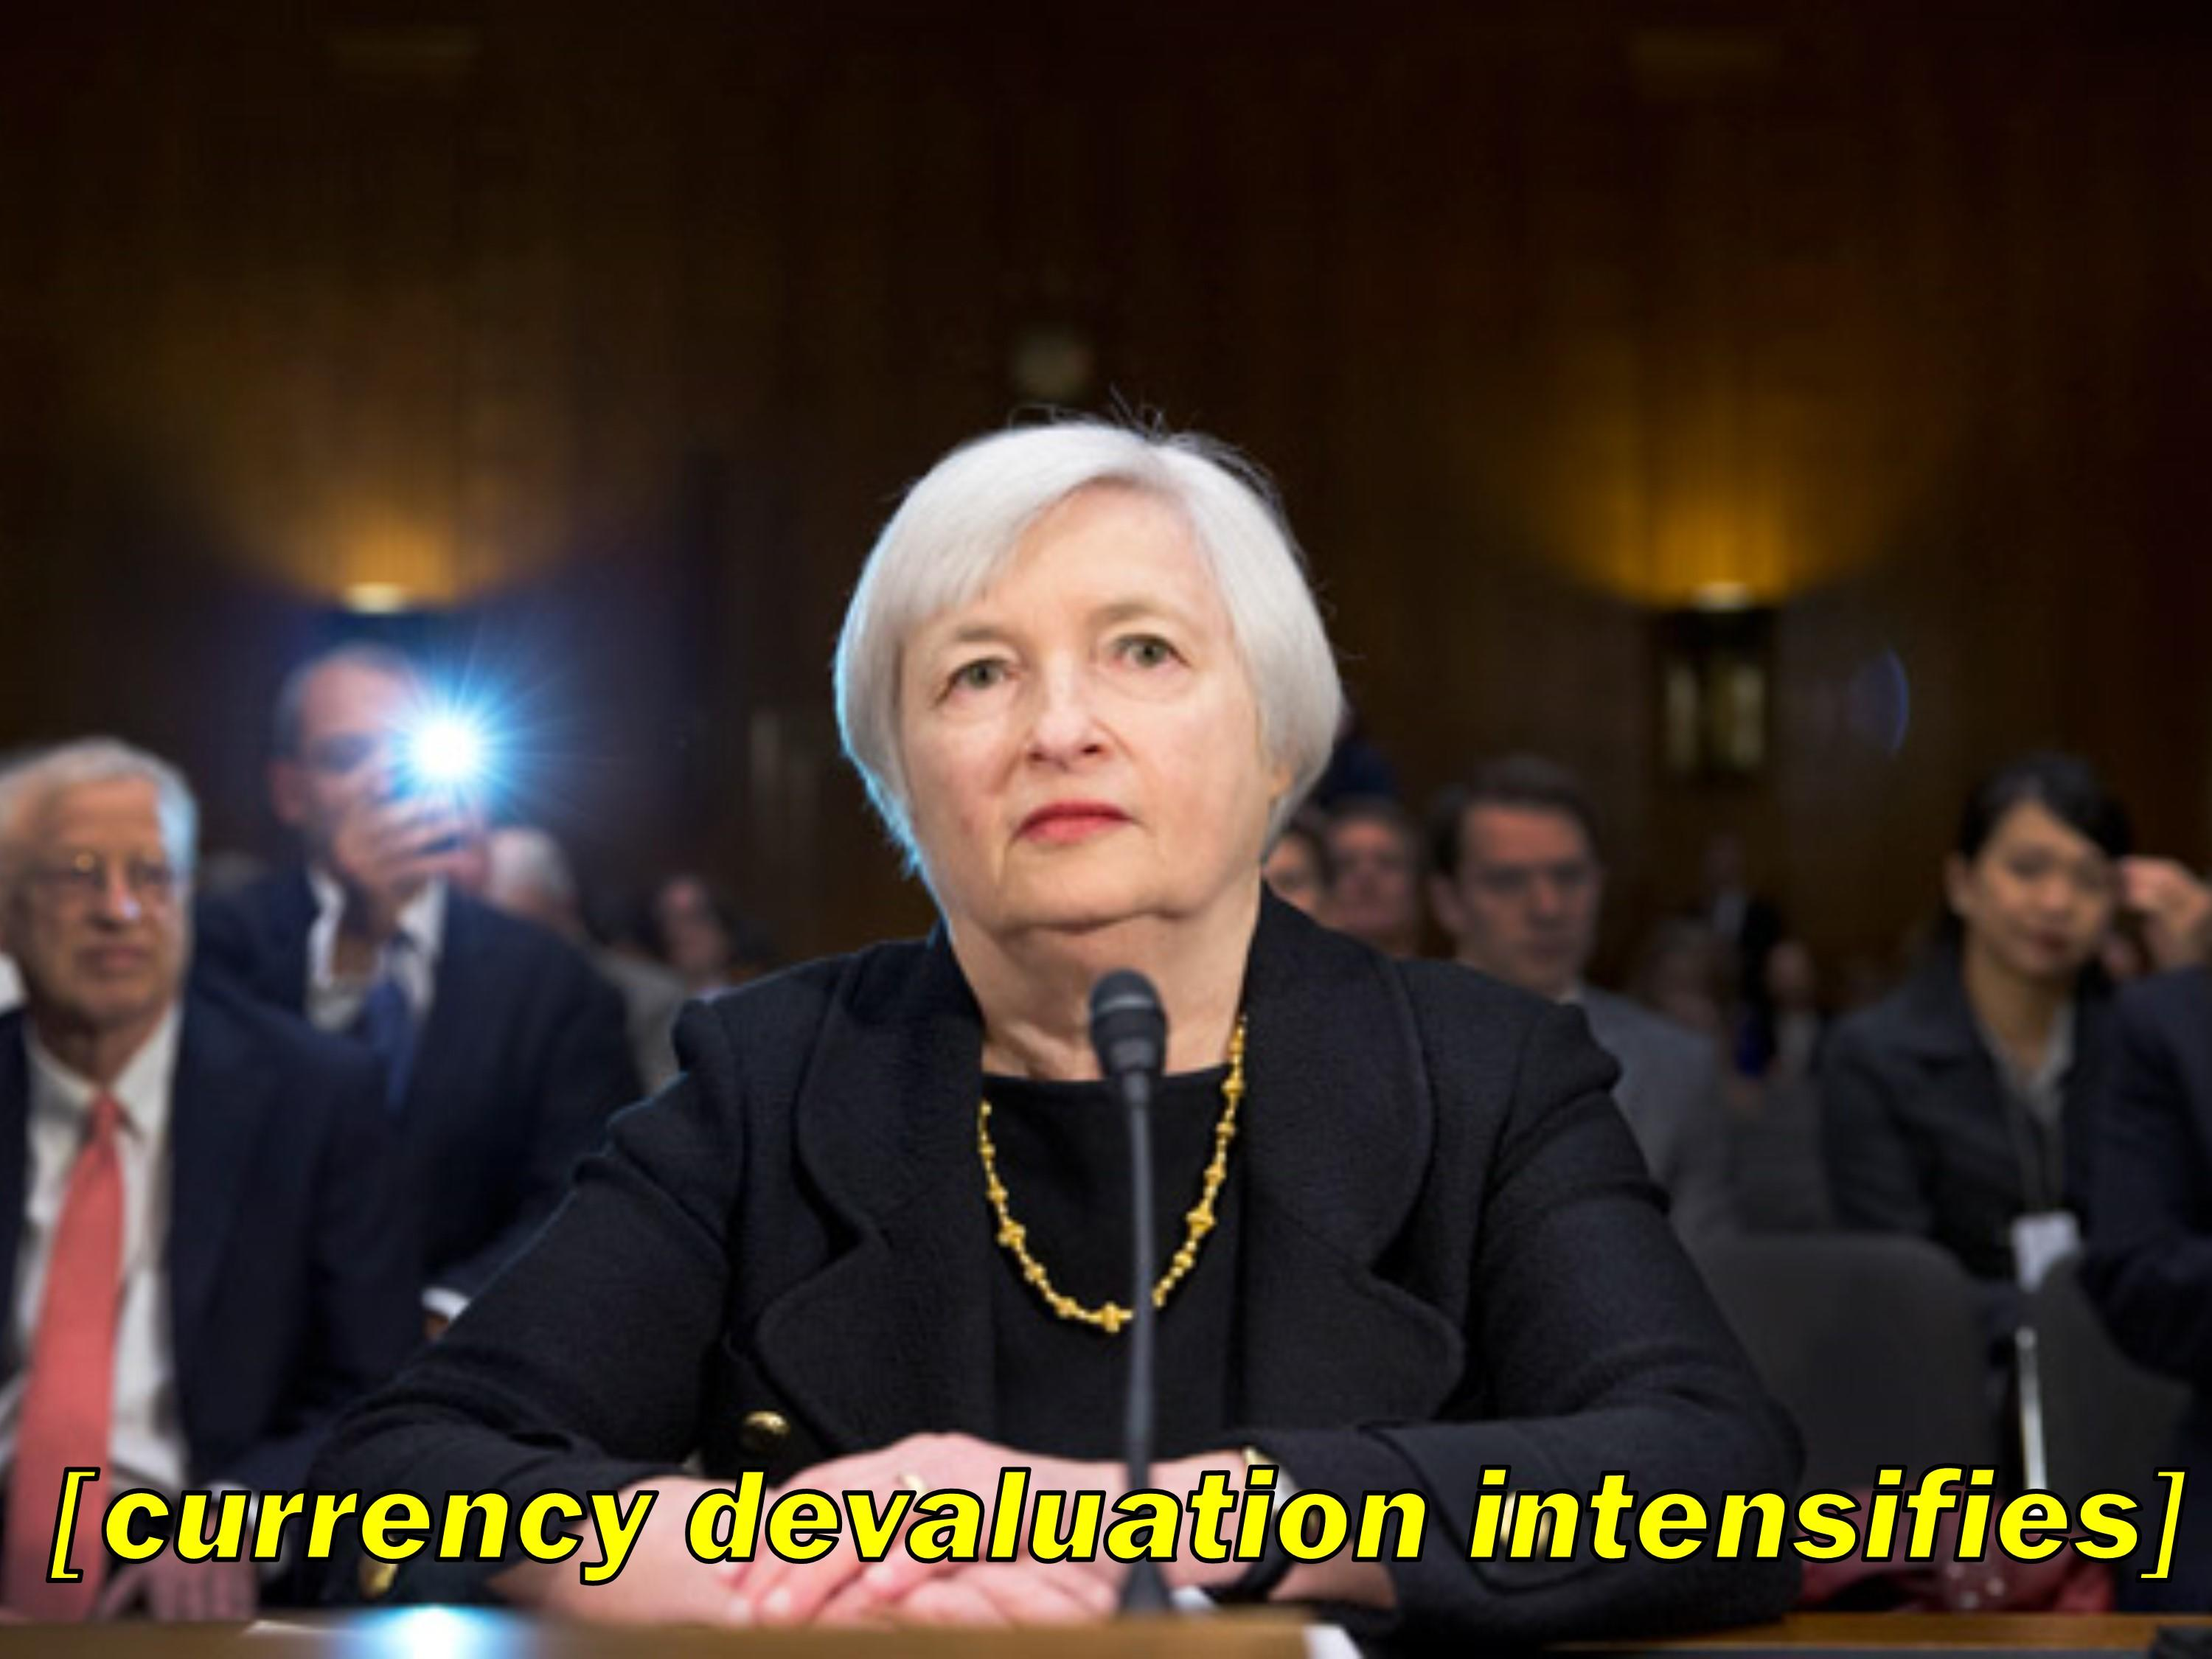 janet yellen currency devaluation intensifies intensifies know your meme janet yellen currency devaluation